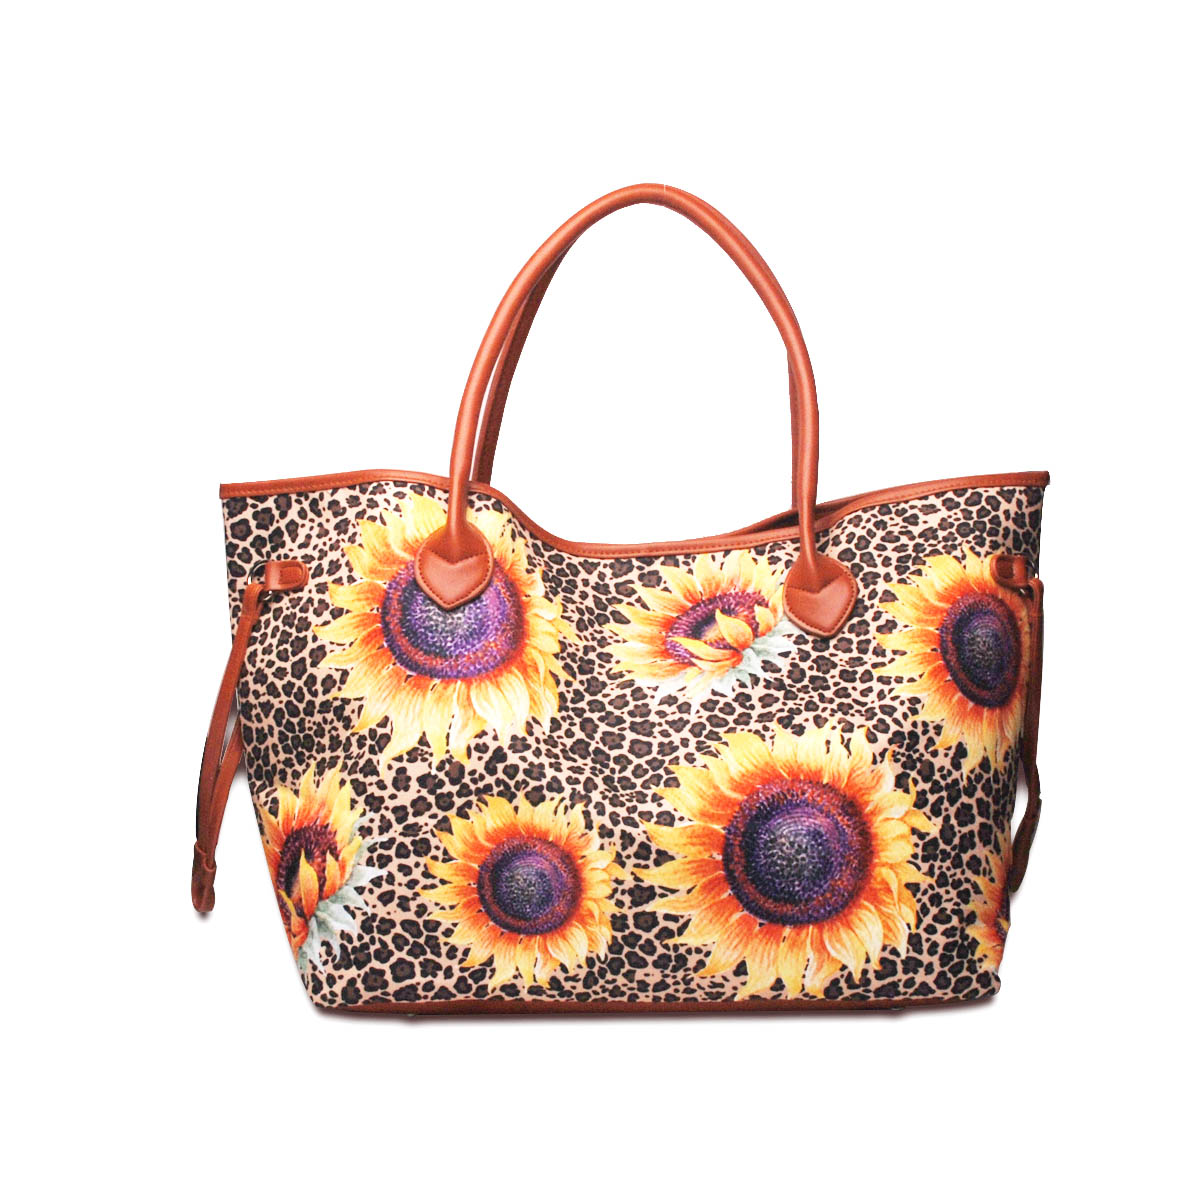 Wholesale Sunflower <strong>Tote</strong> Bag Canvas Leopard Handbag Women Shoulder Purse Sunflower Leopard Aztec <strong>Totes</strong> DOM-1089004